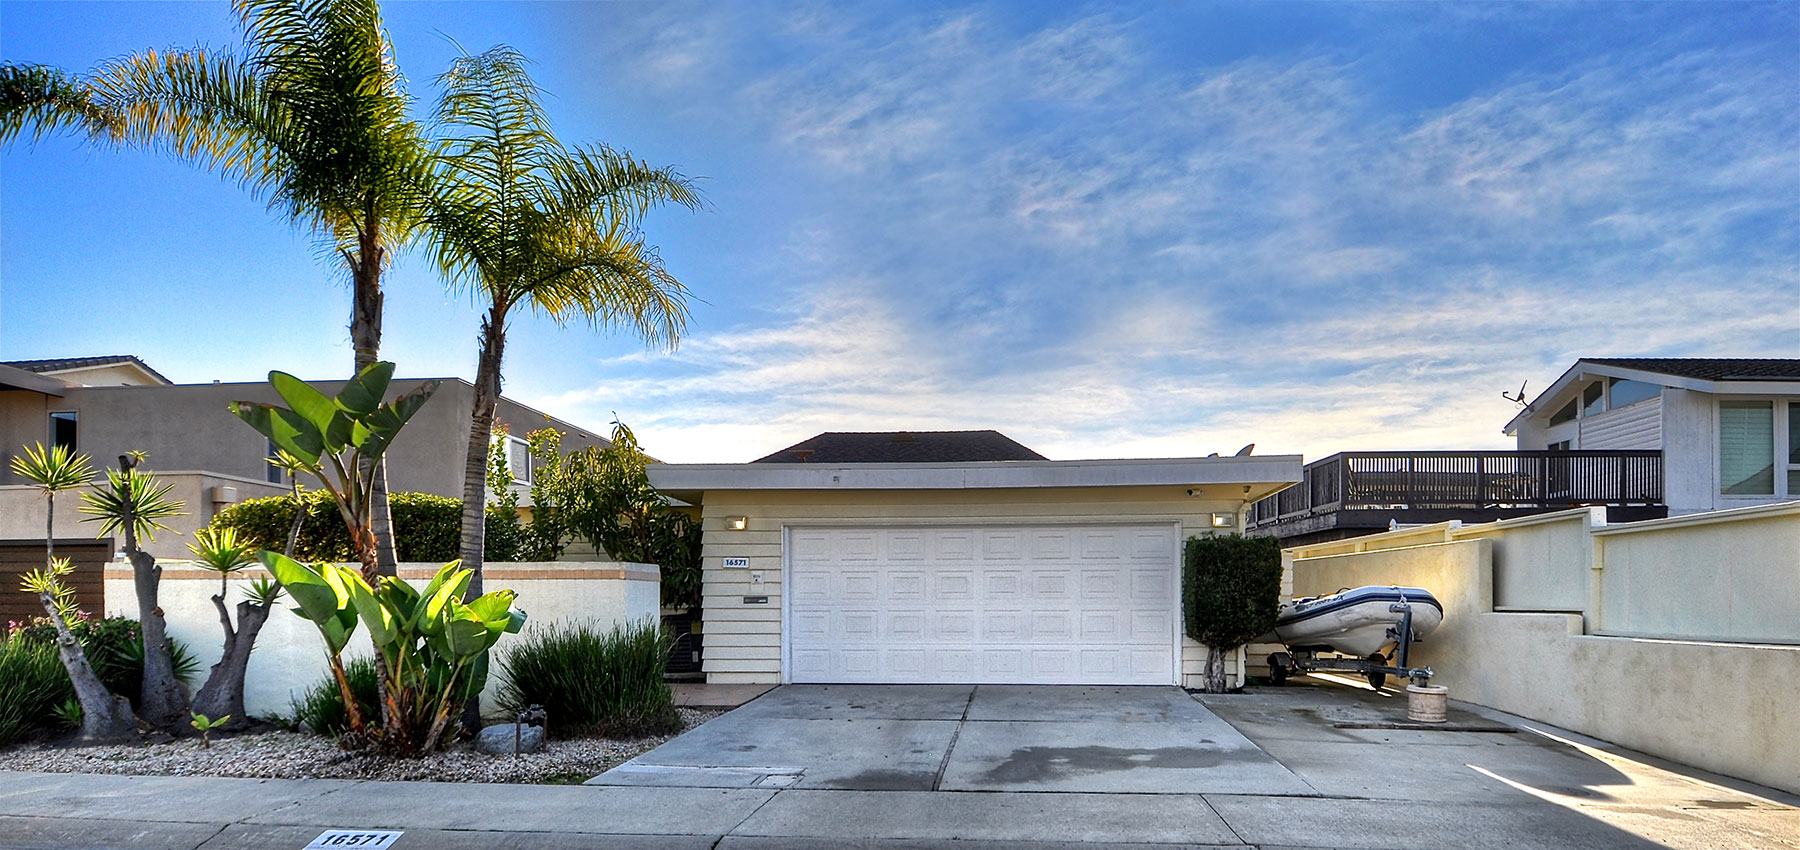 Single Family Home for Sale at 16571 Ensign Huntington Beach, California, 92649 United States